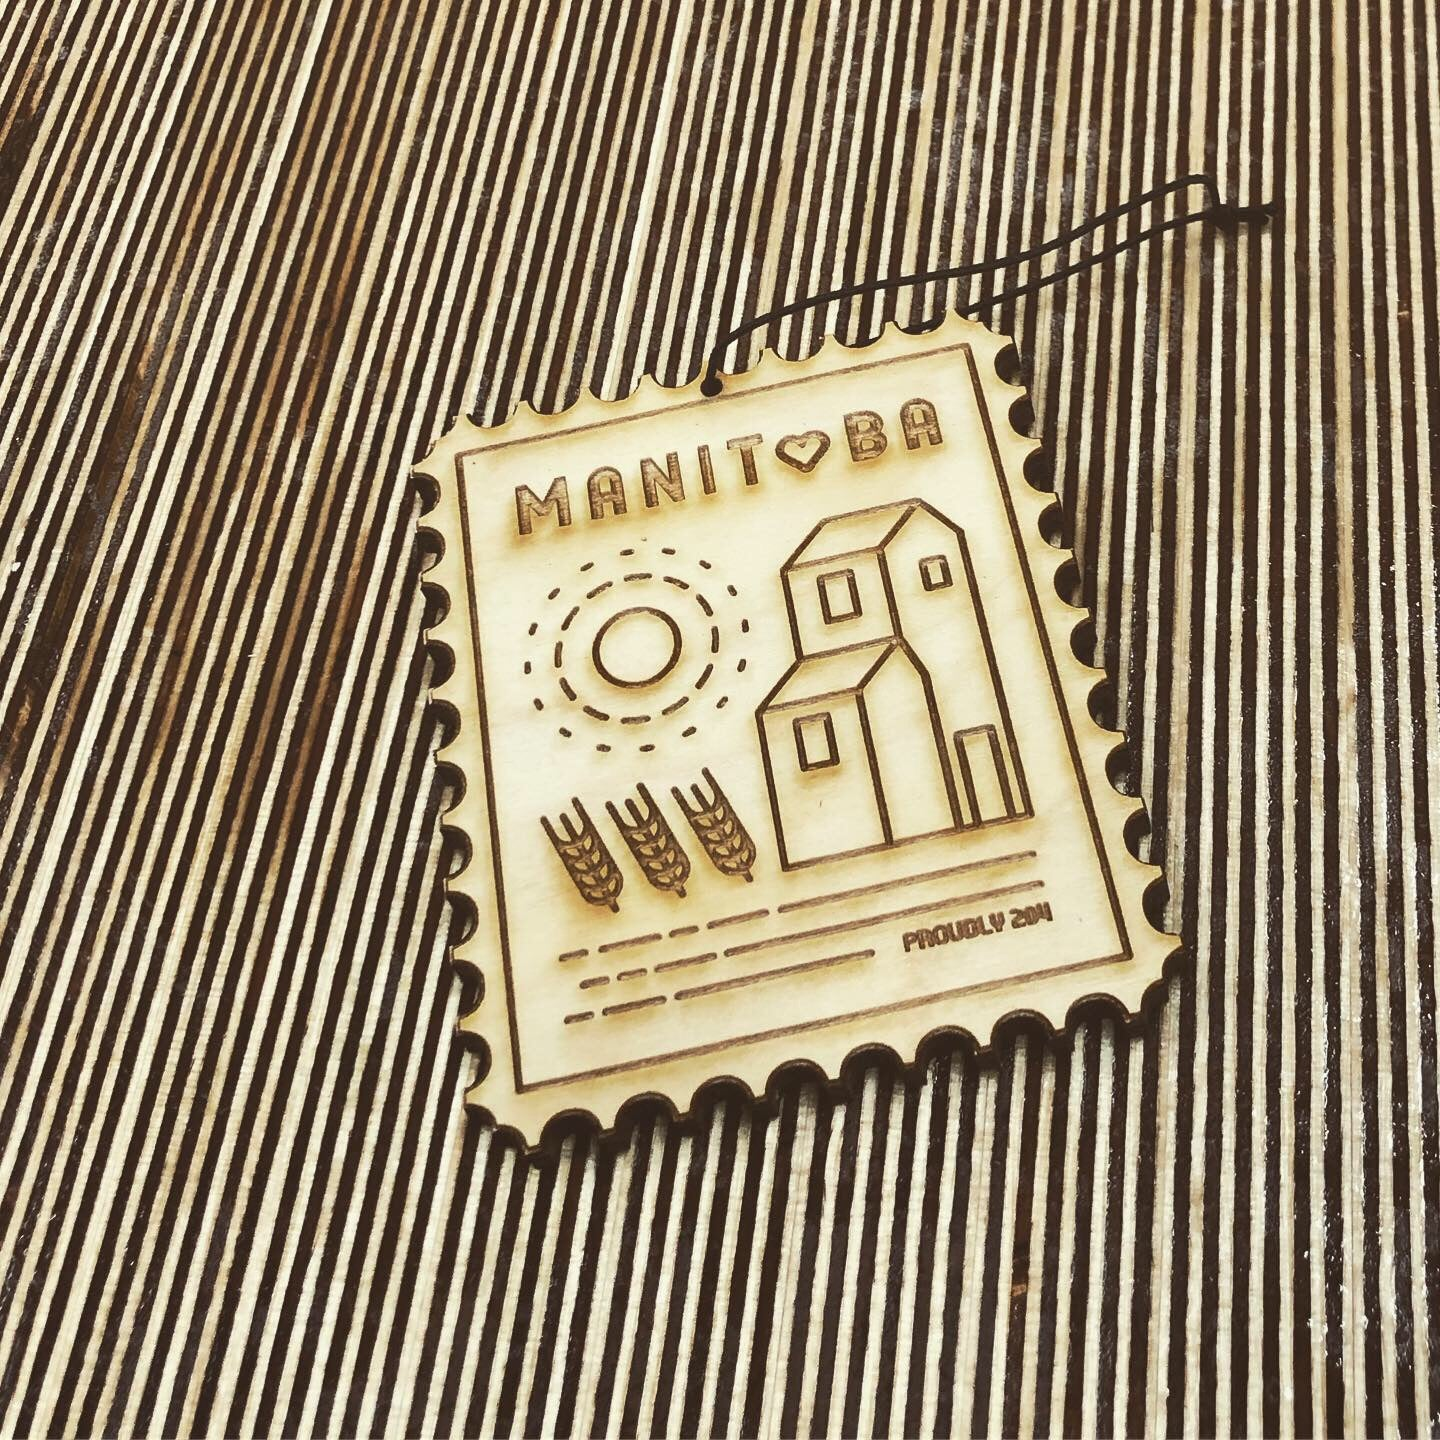 Manitoba Stamp – Rescentable Wood Car Air Freshener